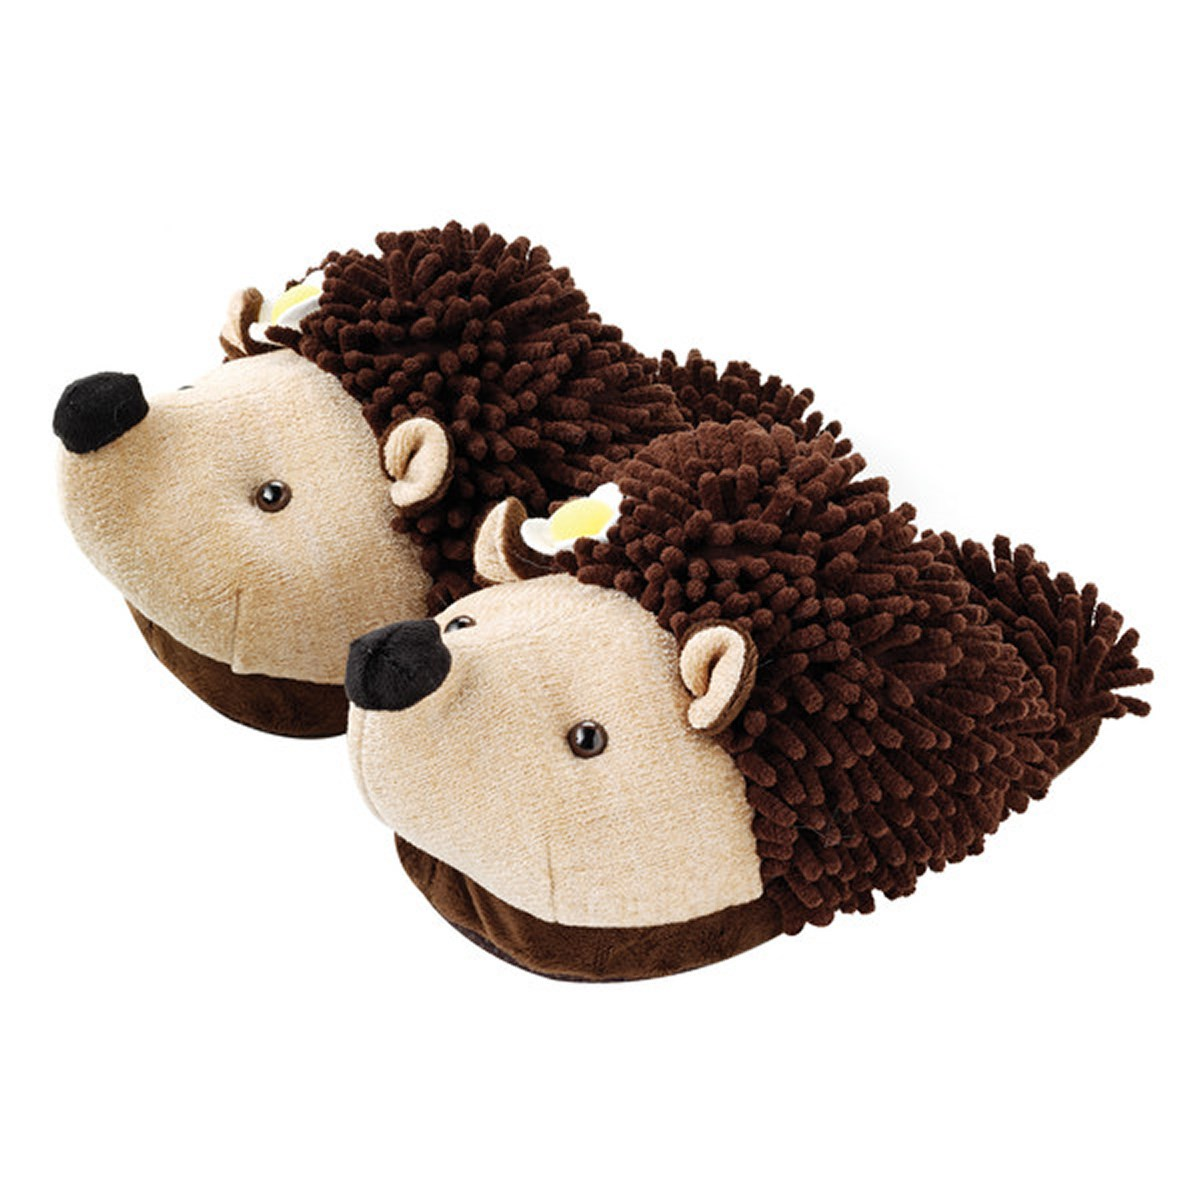 Aroma Home Fun For Feet Fuzzy Slippers - Hedgehog